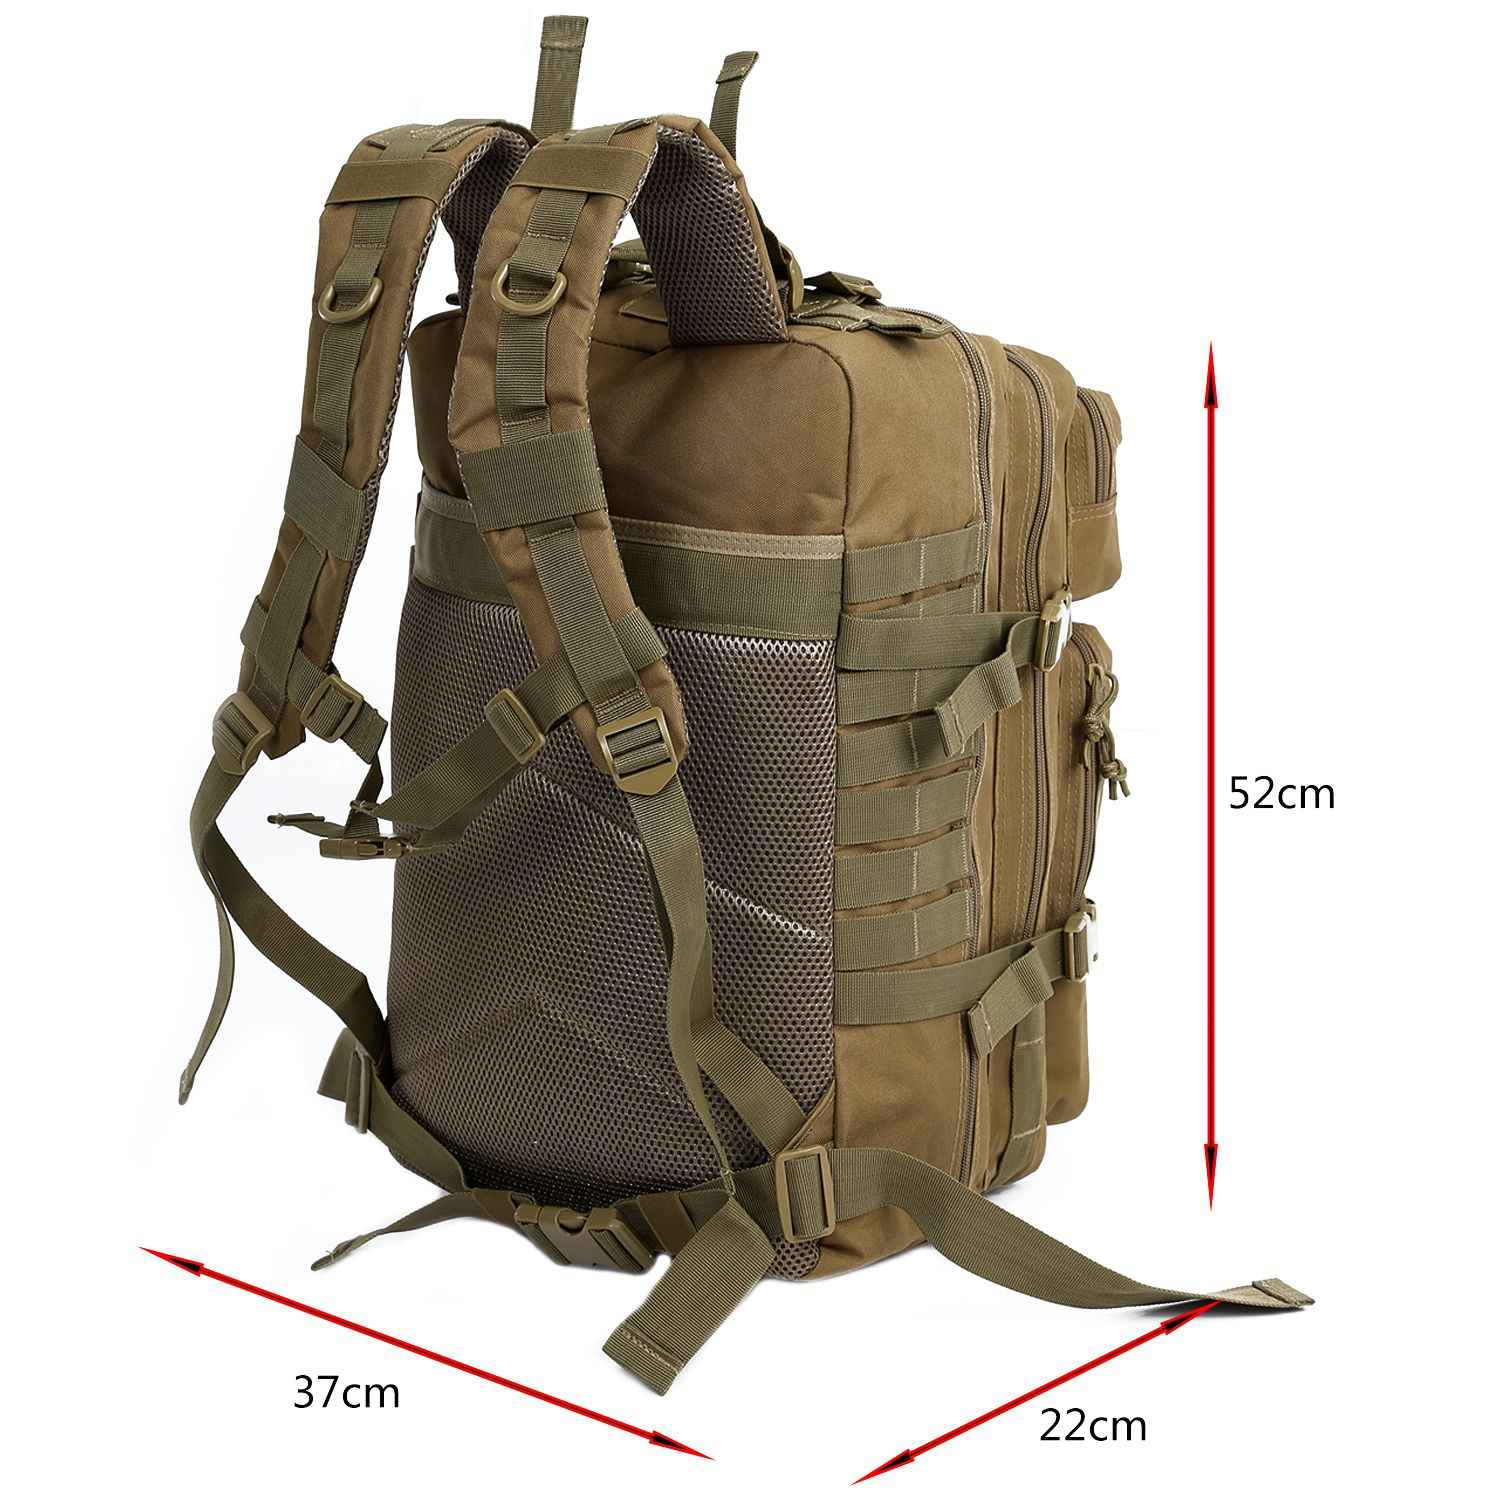 5d157d1b71ad LJL 34L Tactical Assault Pack Backpack Army Molle Waterproof Bug Out Bag  Small Rucksack for Outdoor Hiking Camping Hunting